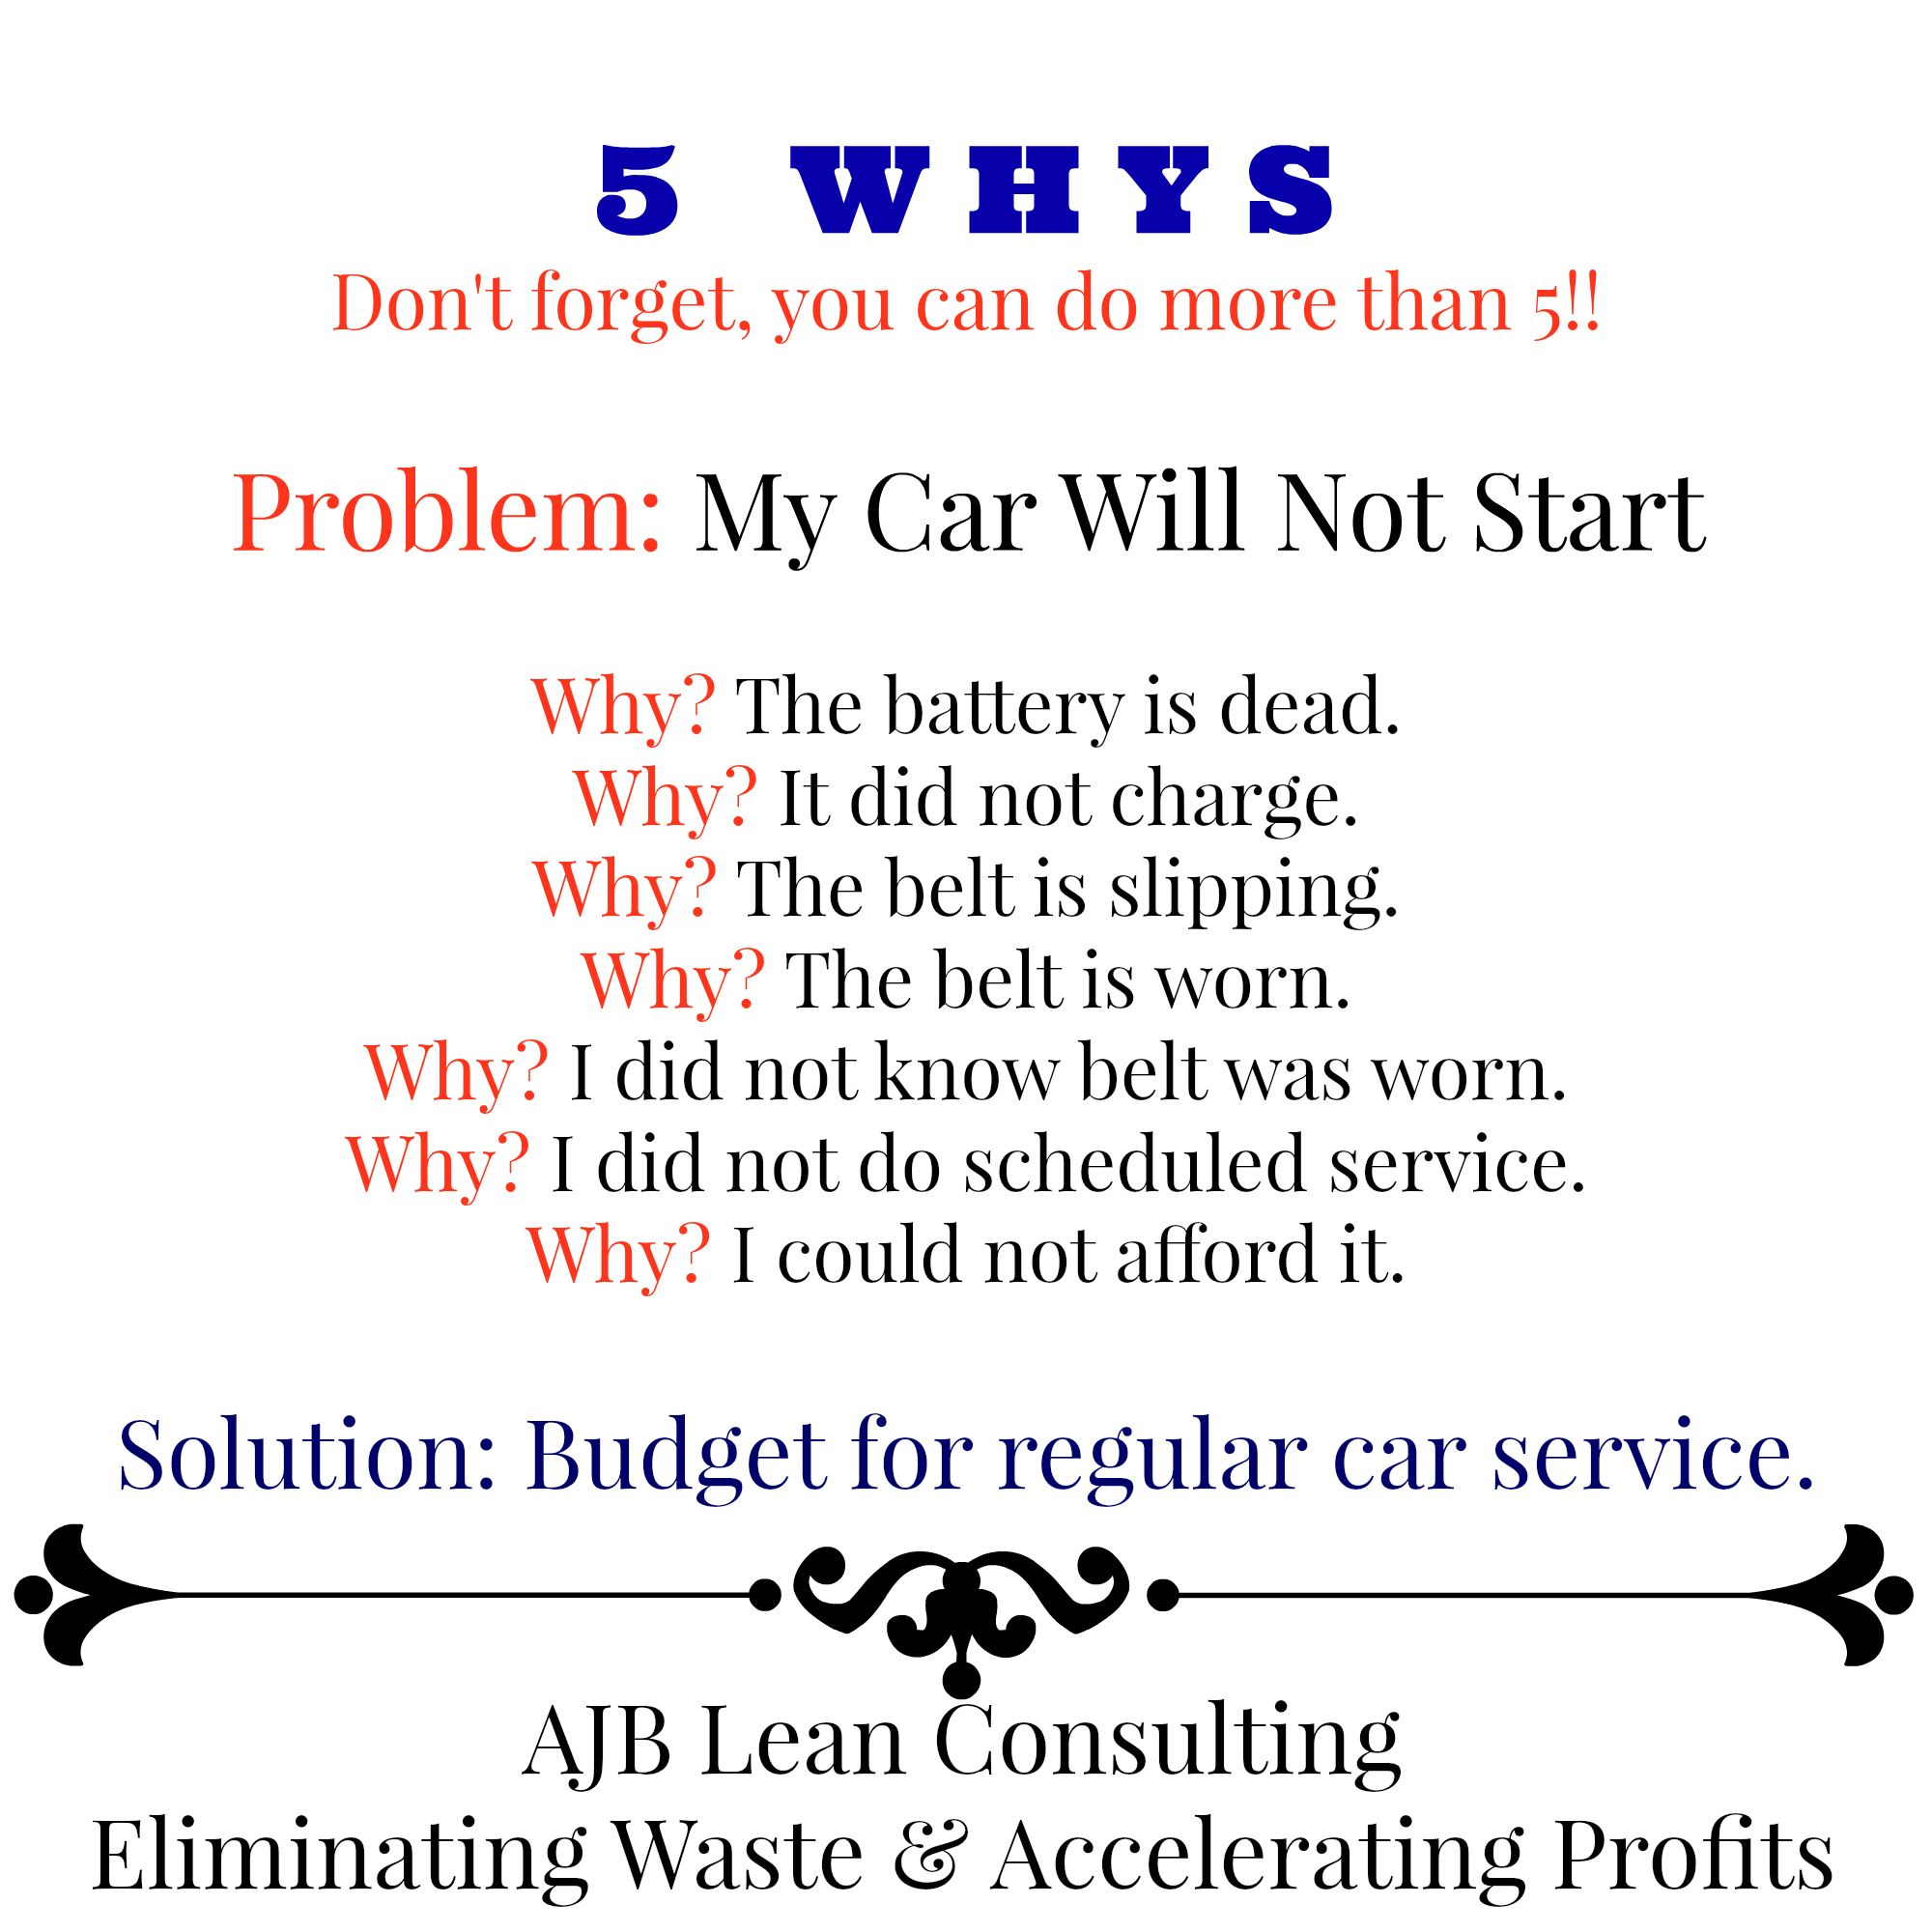 5 Whys A Simple Way To Get To The Root Cause Of A Problem